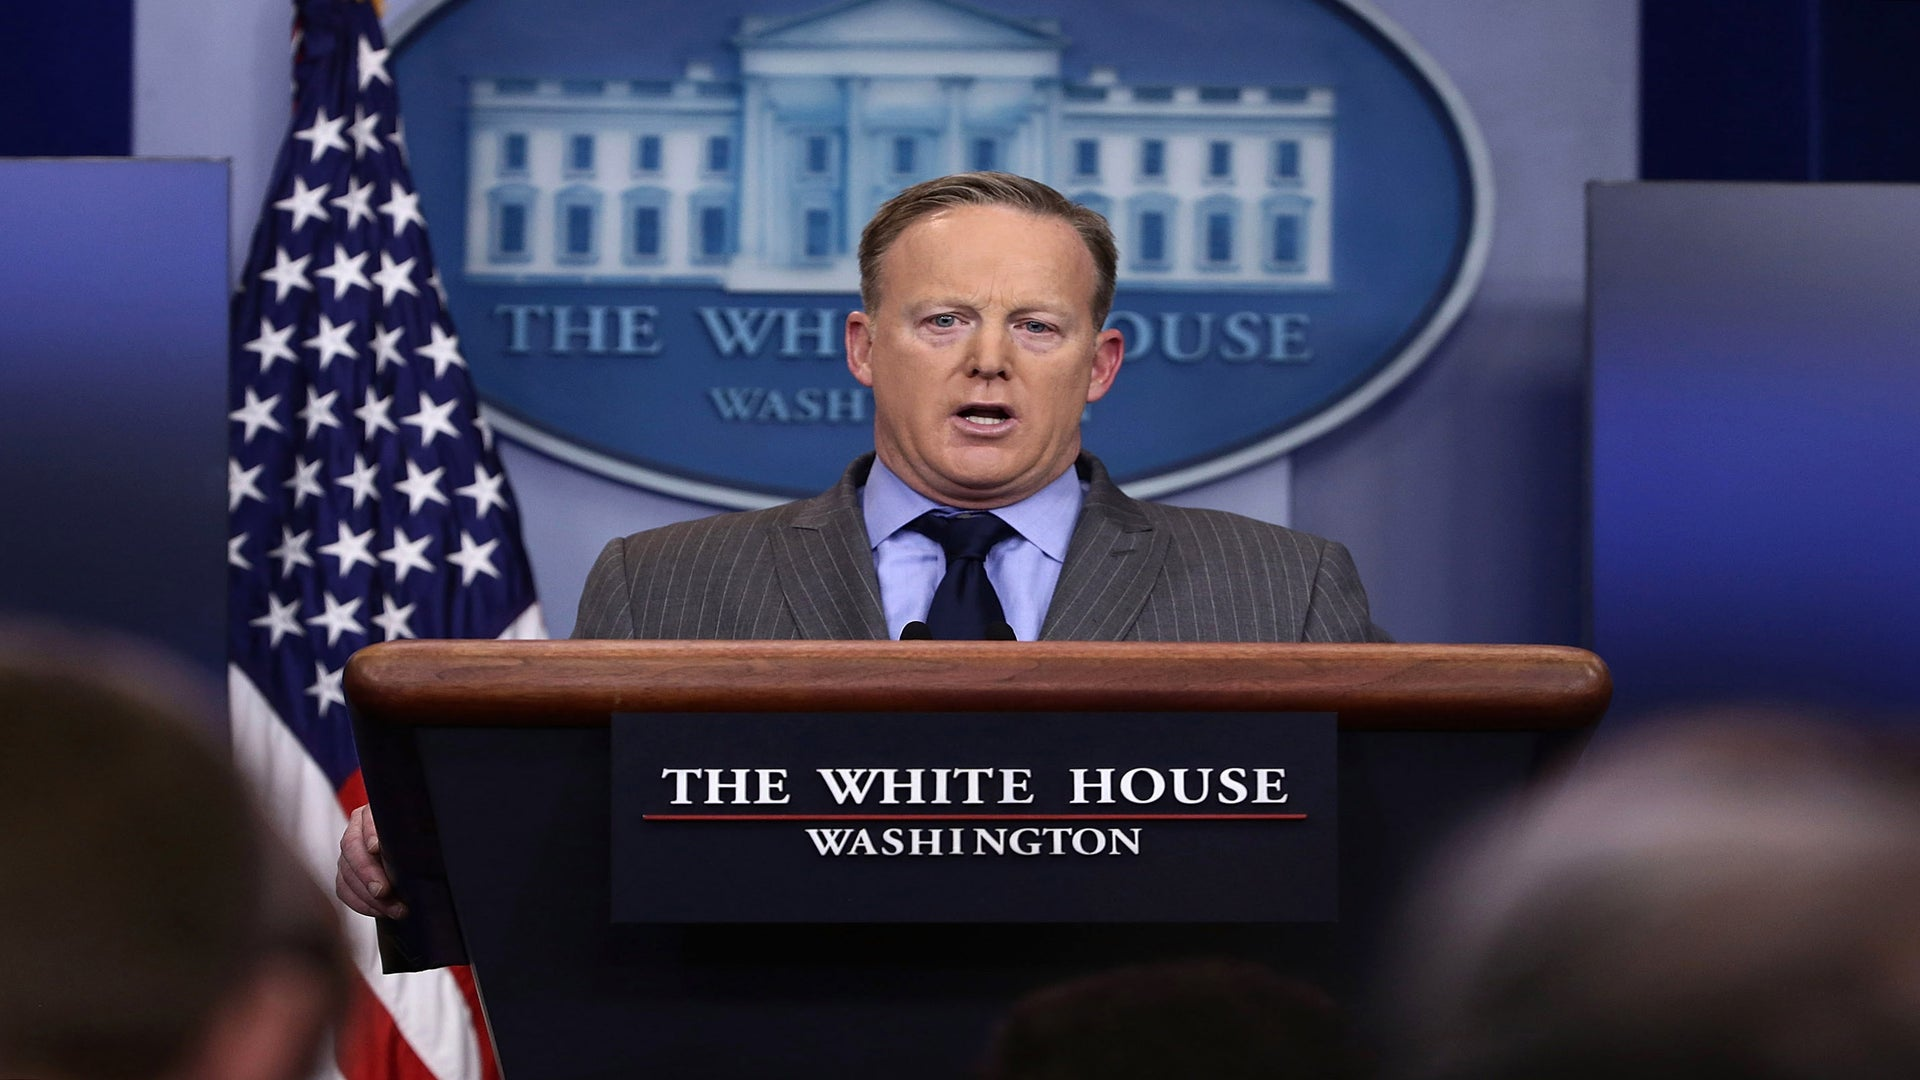 Trump's Press Secretary Breaks Tradition By Answering To Pro-Trump Site First